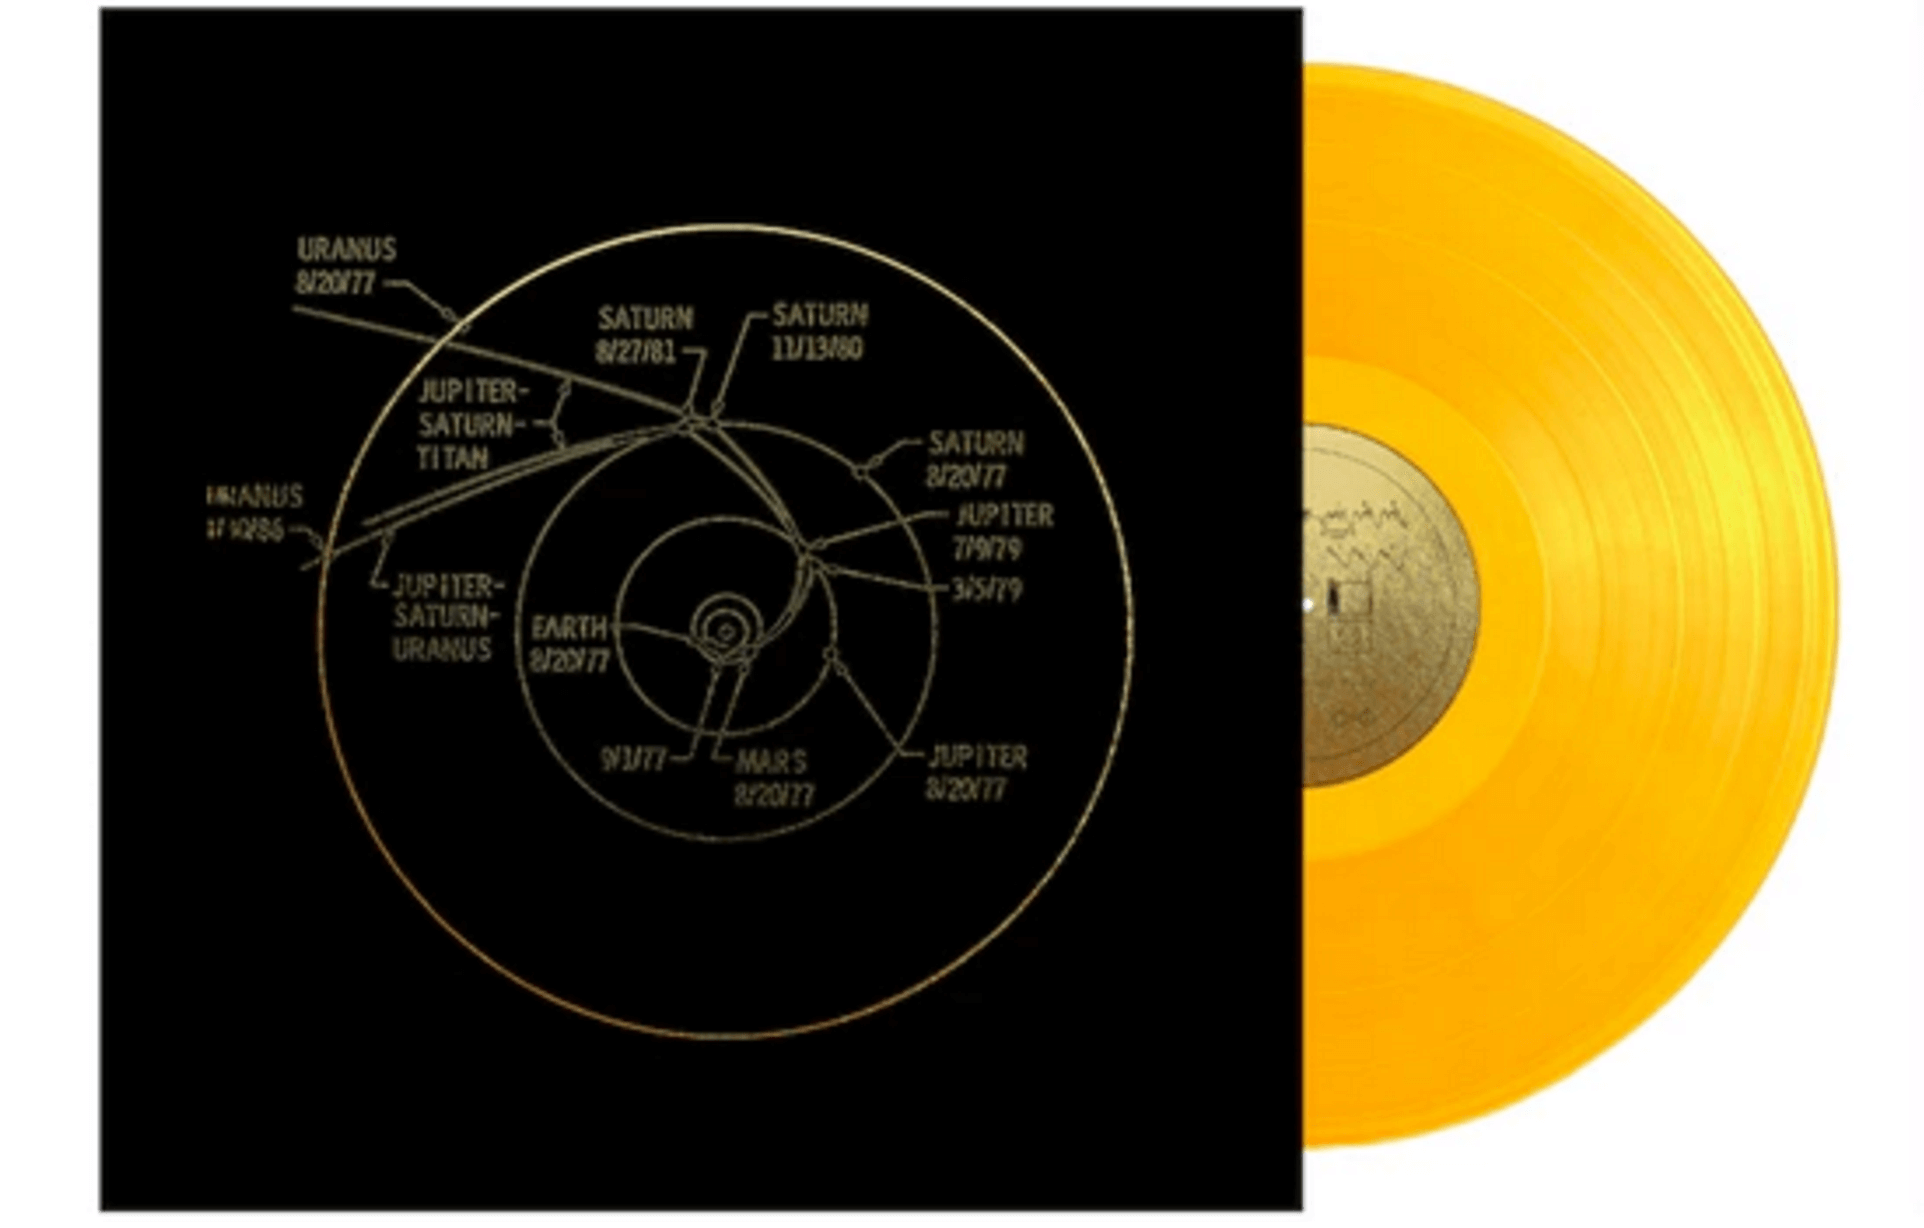 Voyager Golden Record Getting Release Through